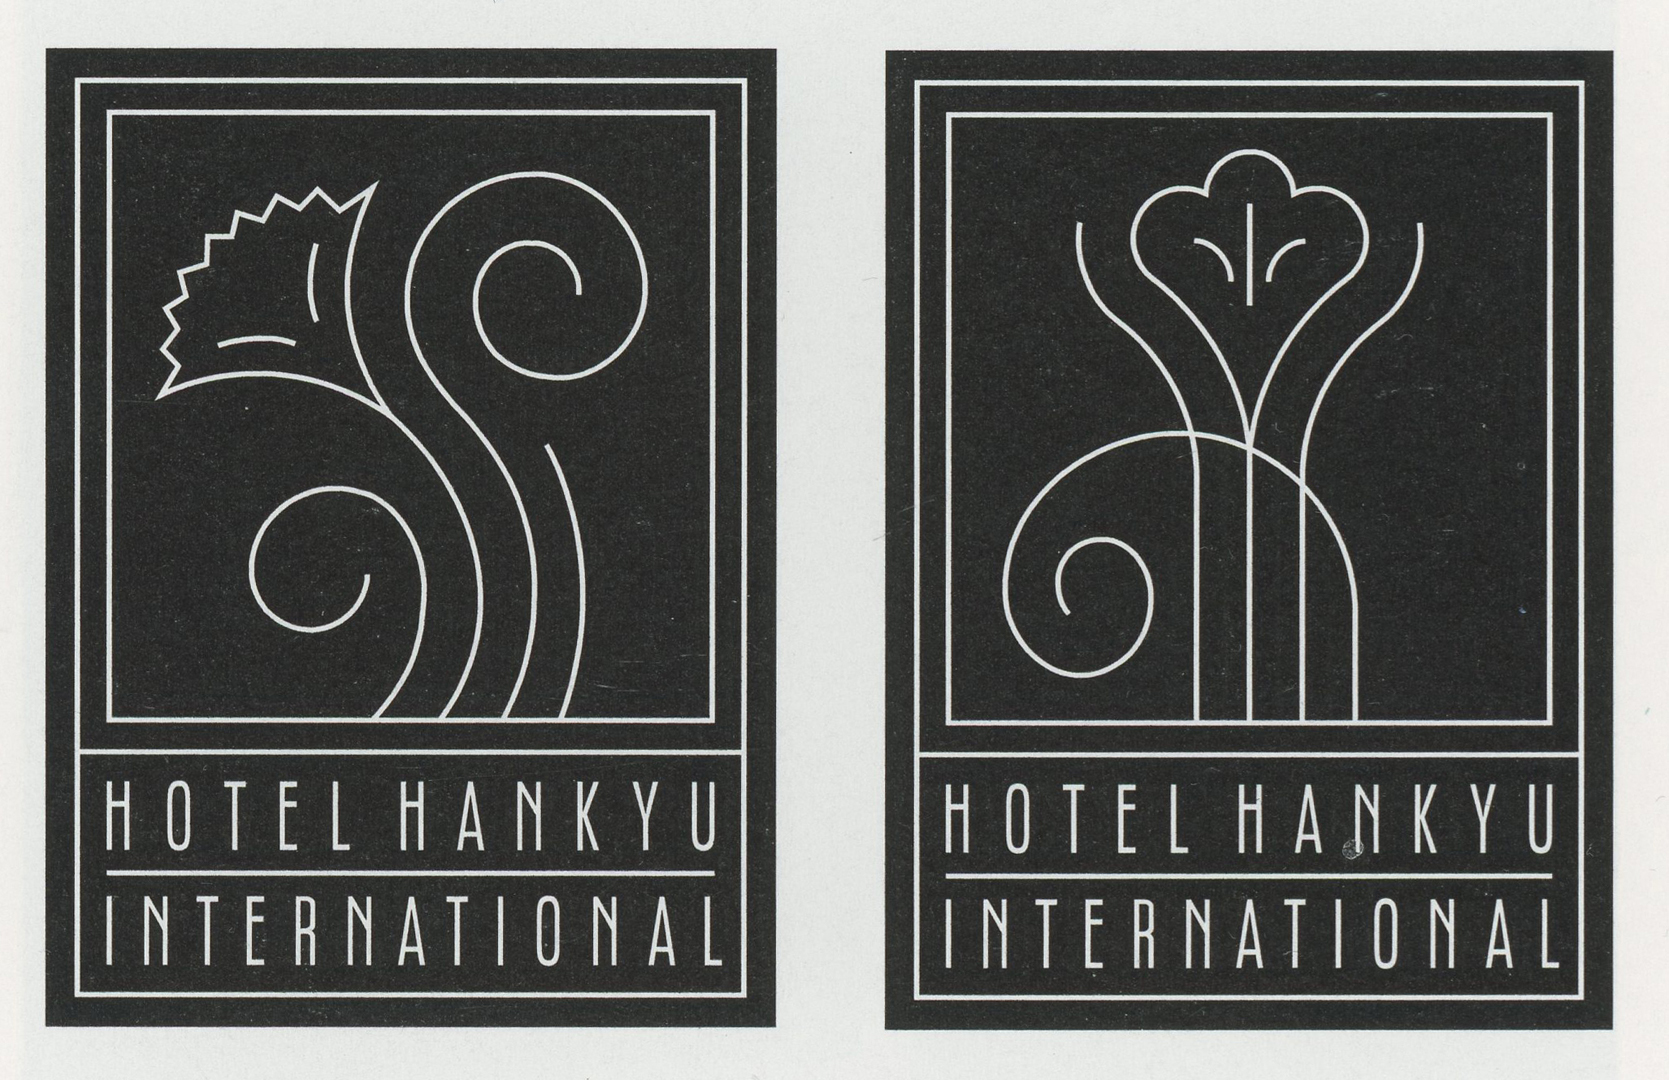 ©, Pentagram, Hotel Hankyu International